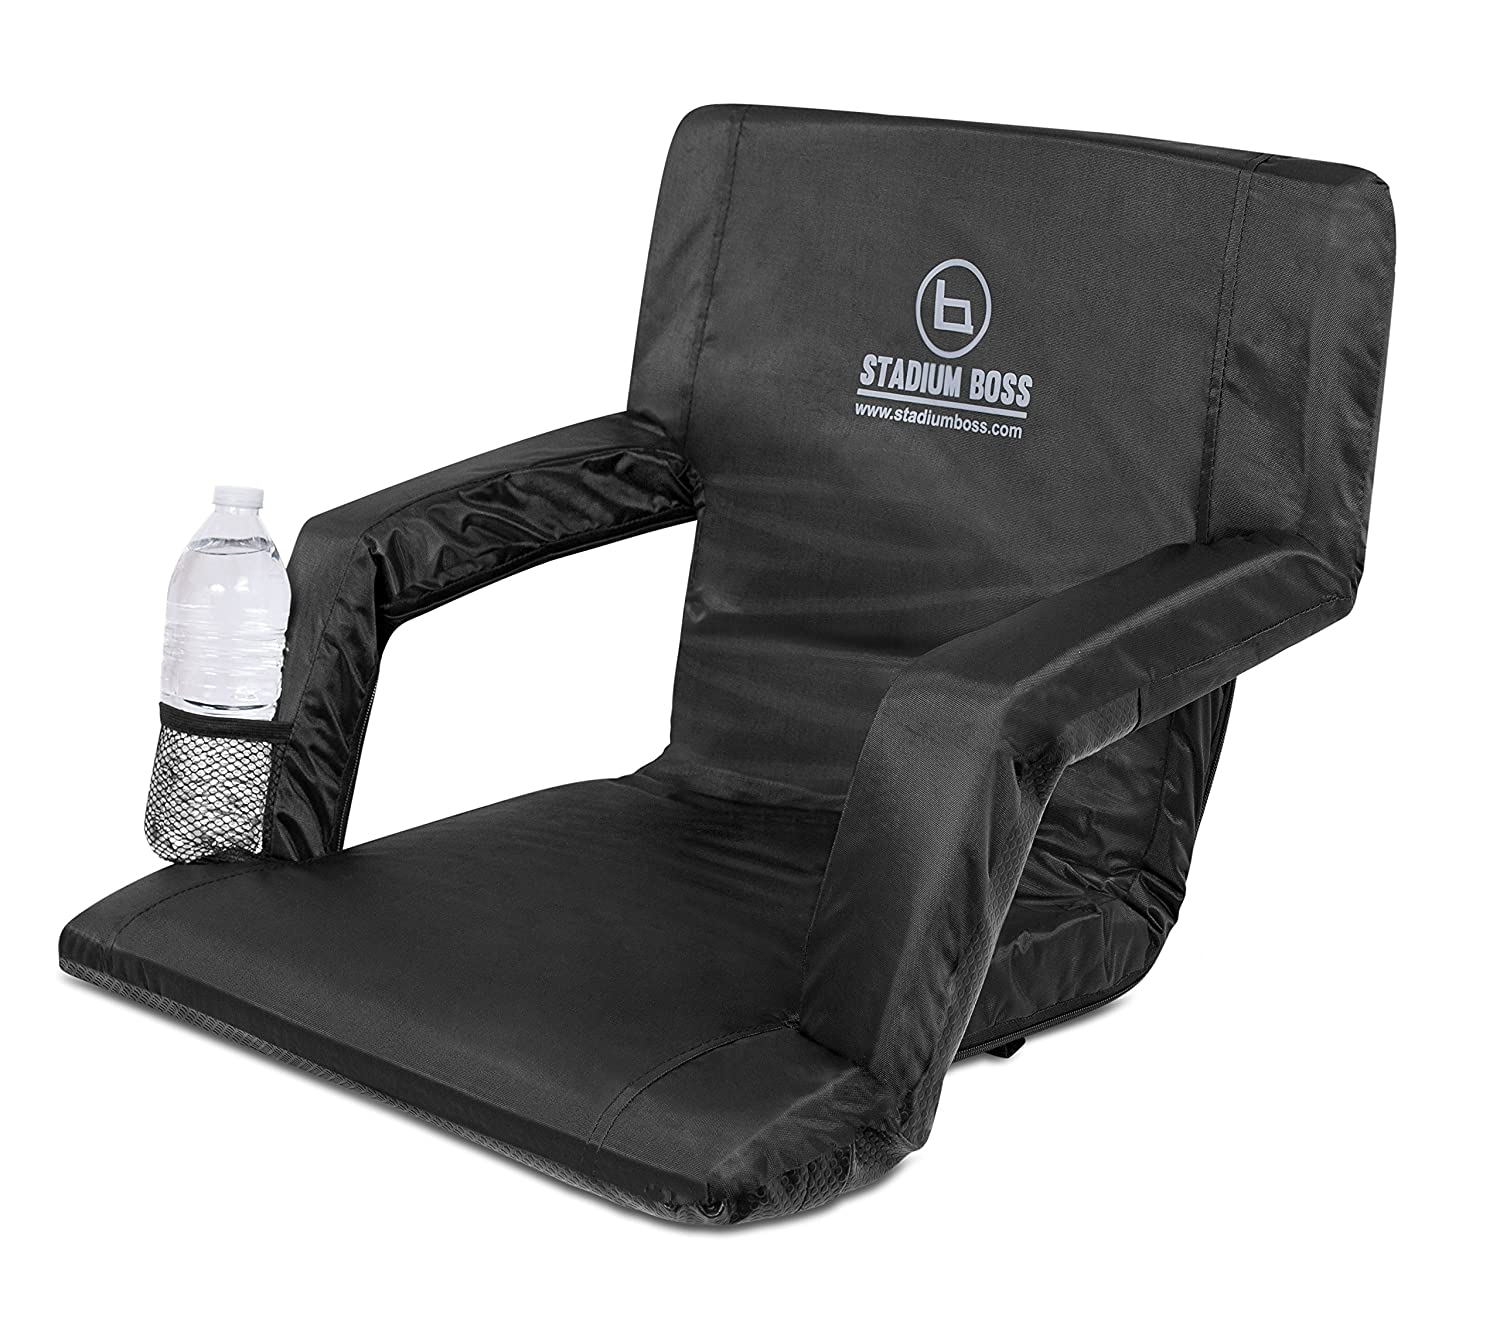 Fantastic Stadium Boss Seat Reclining Bleacher Chair Folding With Back And Arms Padded Sport Chair Armrest Recline Perfect For Bleachers Lawns And Backyards Ibusinesslaw Wood Chair Design Ideas Ibusinesslaworg